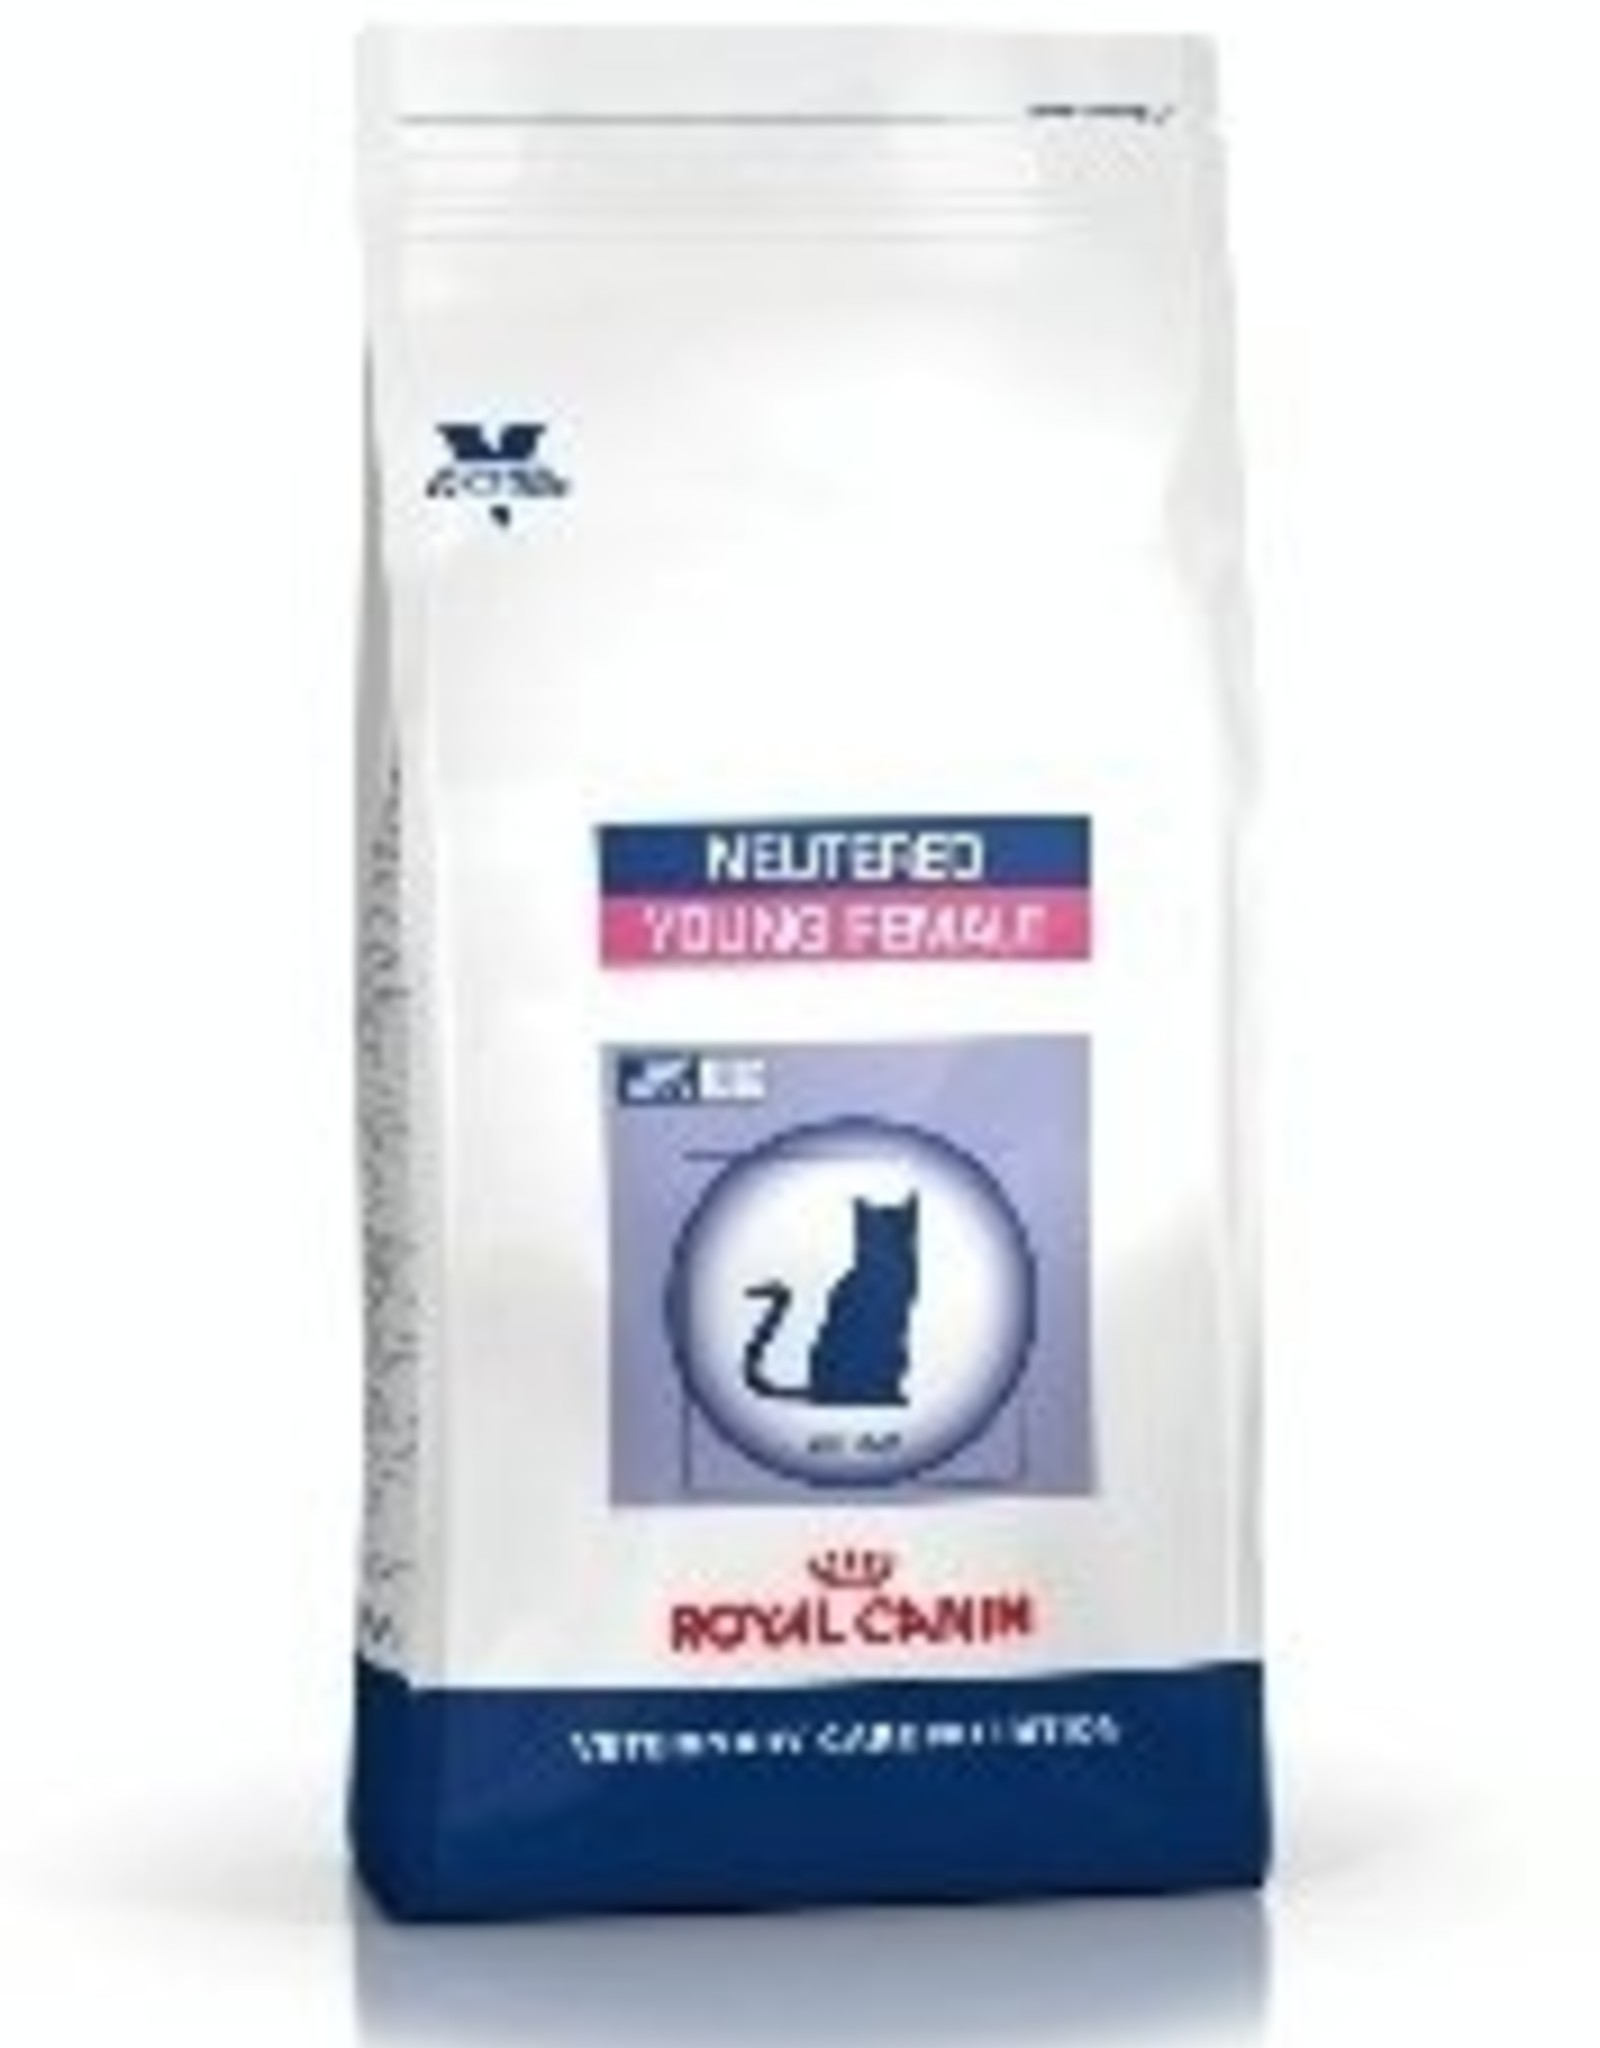 Royal Canin Royal Canin Young Female Chat So 1,5kg